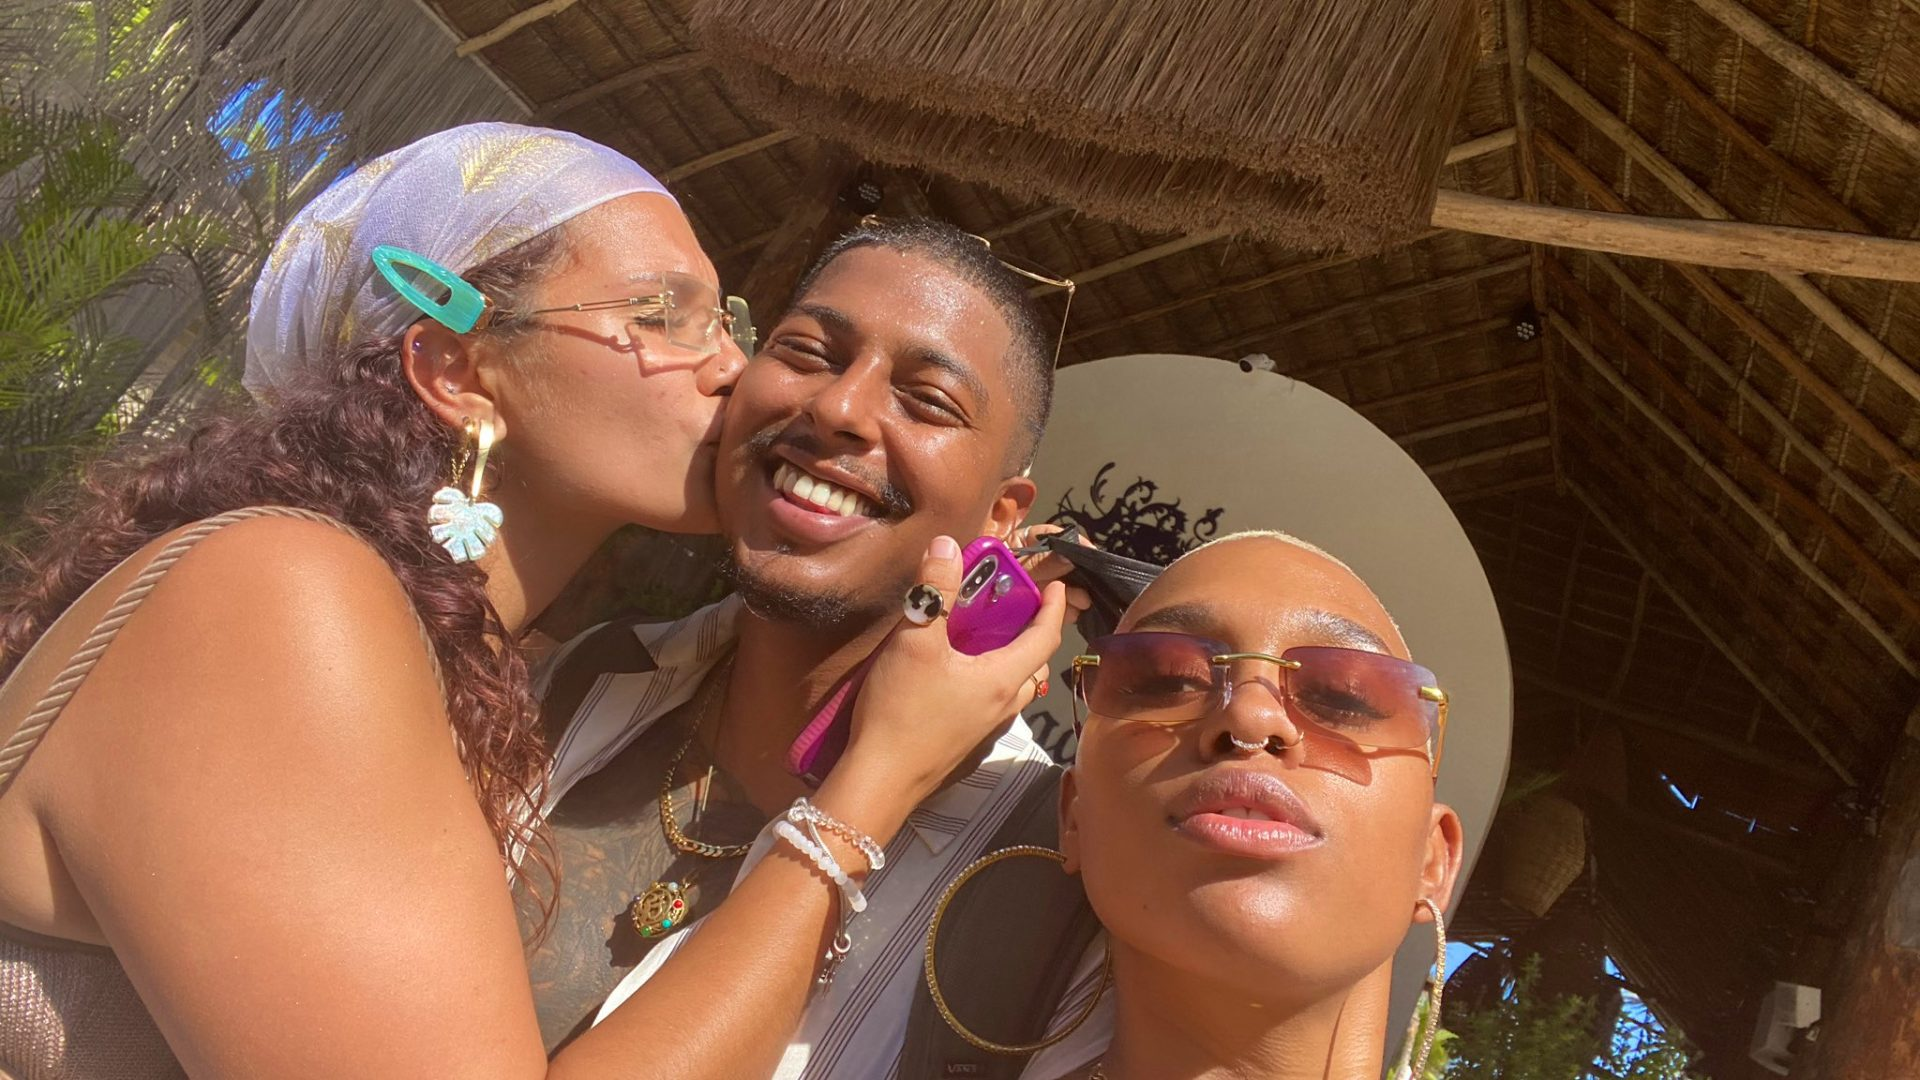 Man trends on social media after showing off his two girlfriends (photos) 2